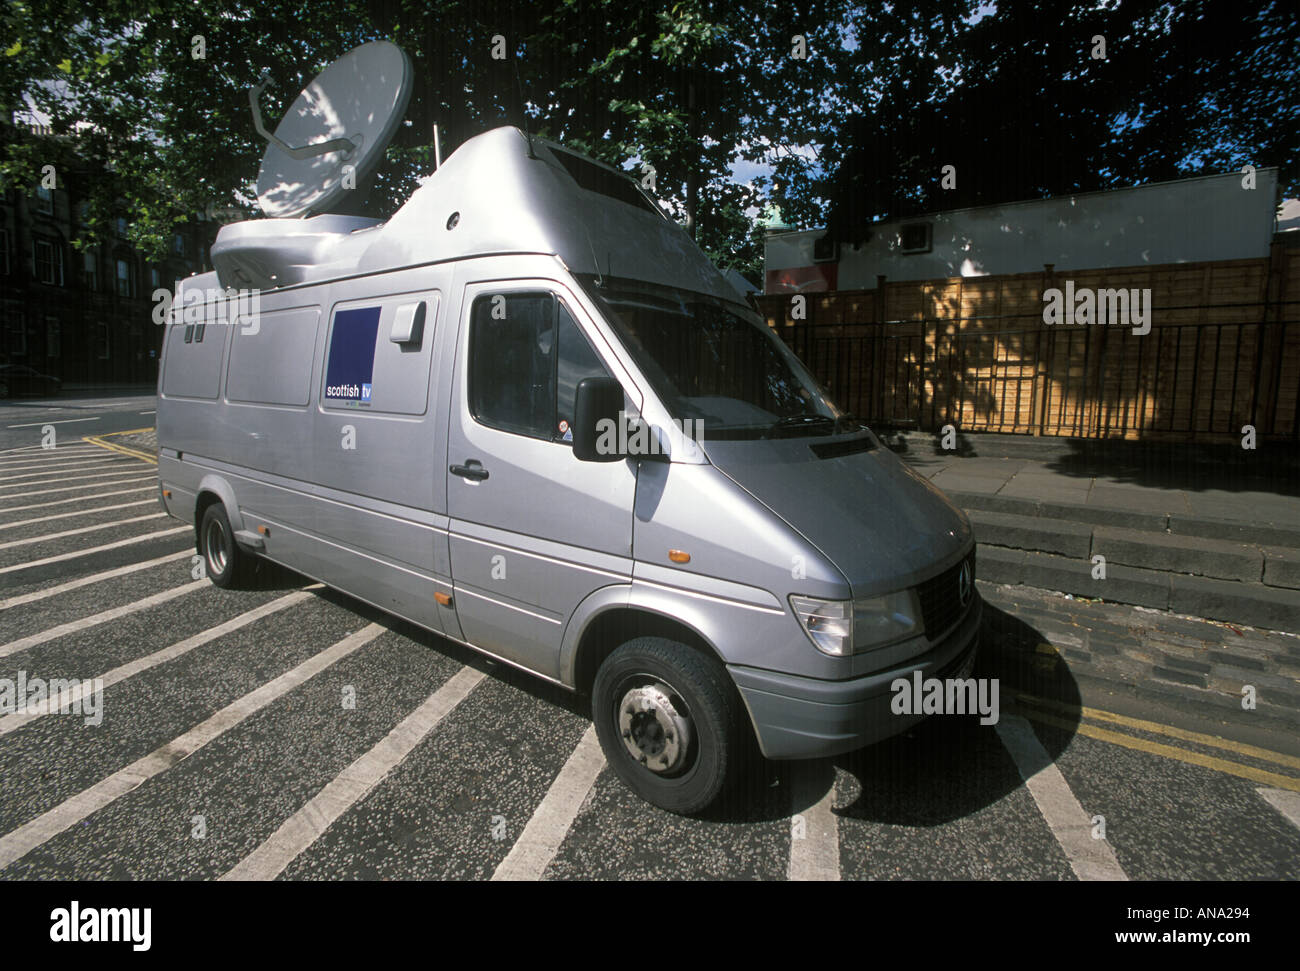 TV van with satellite dish at the Edinburgh Festival - Stock Image